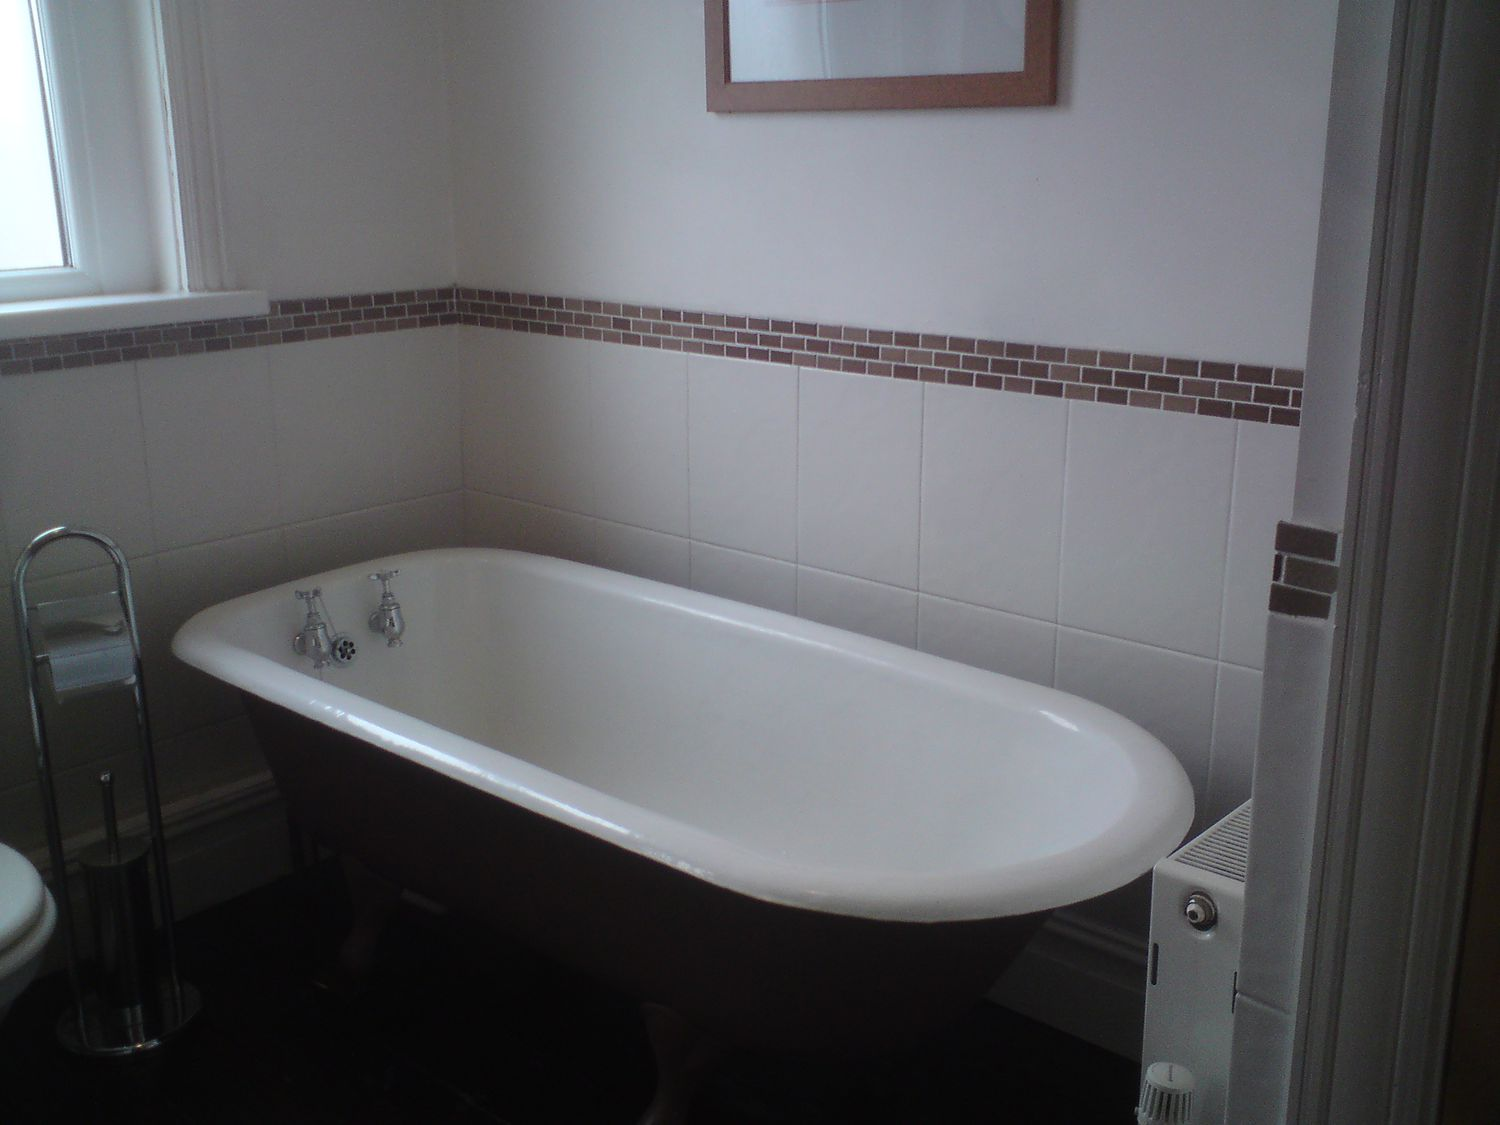 The same view of the old brown painted bath with grey tiles and brown mosaic tiles behind.